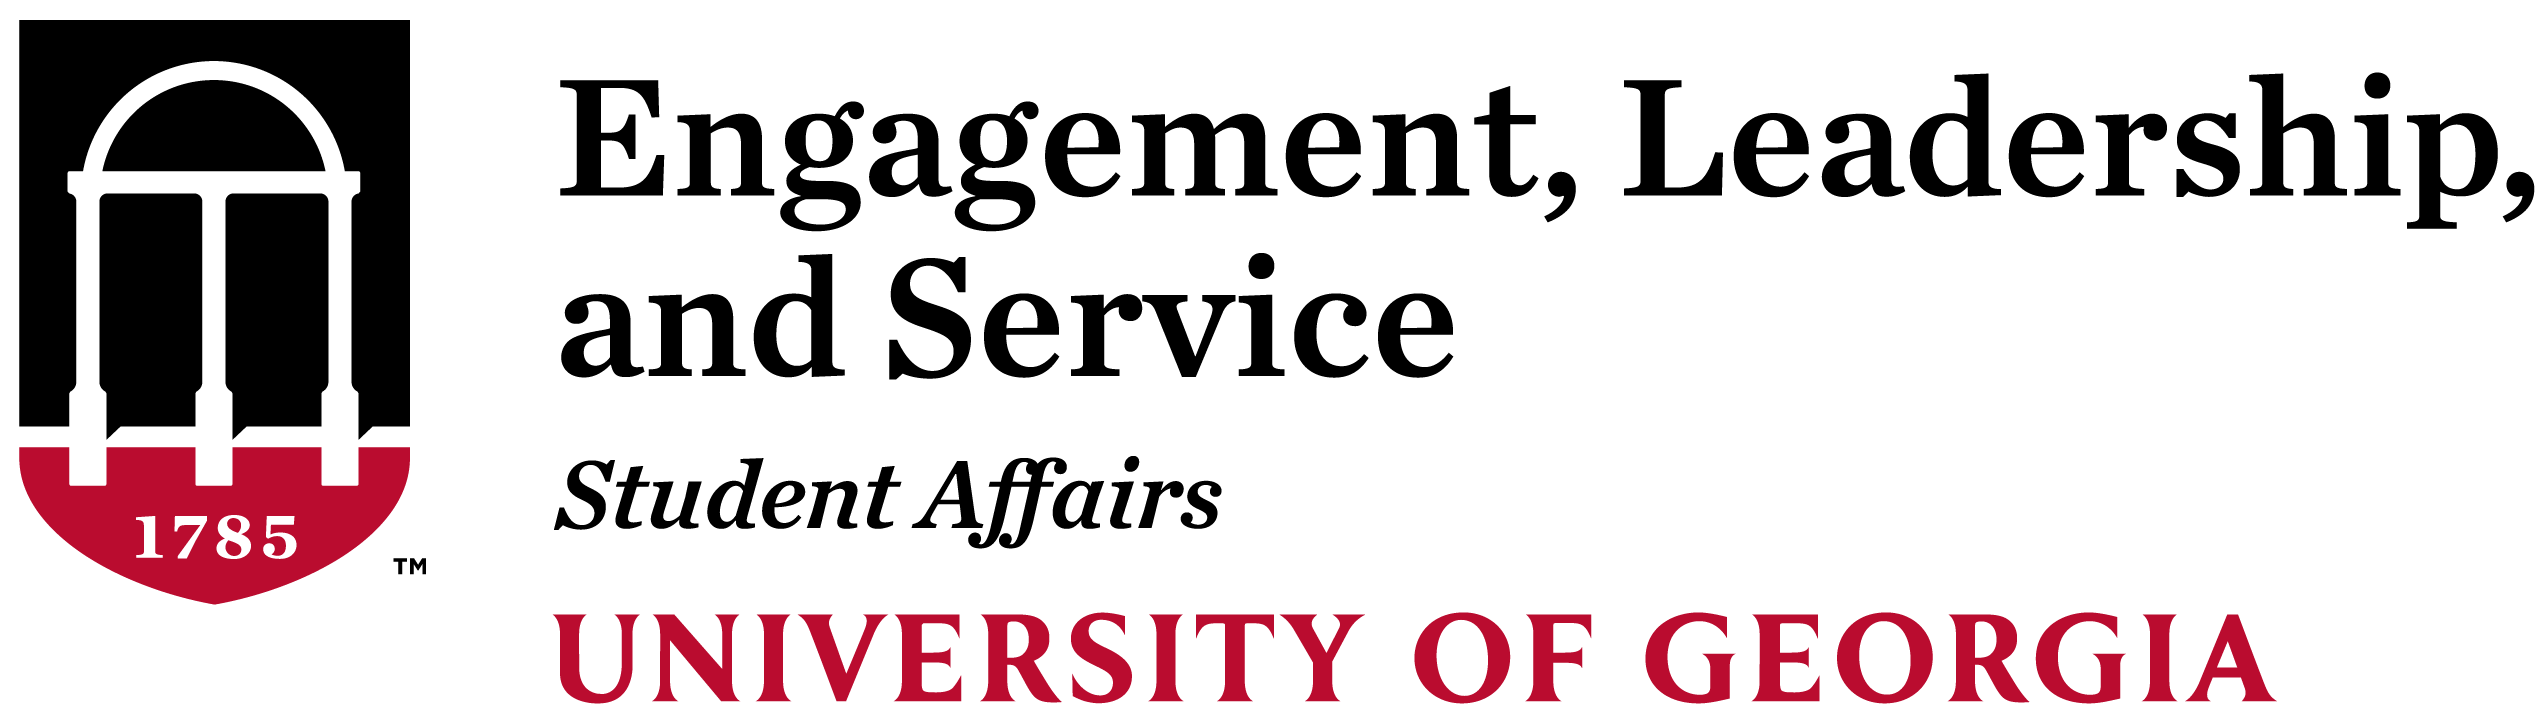 Engagement Leadership and Service Logo